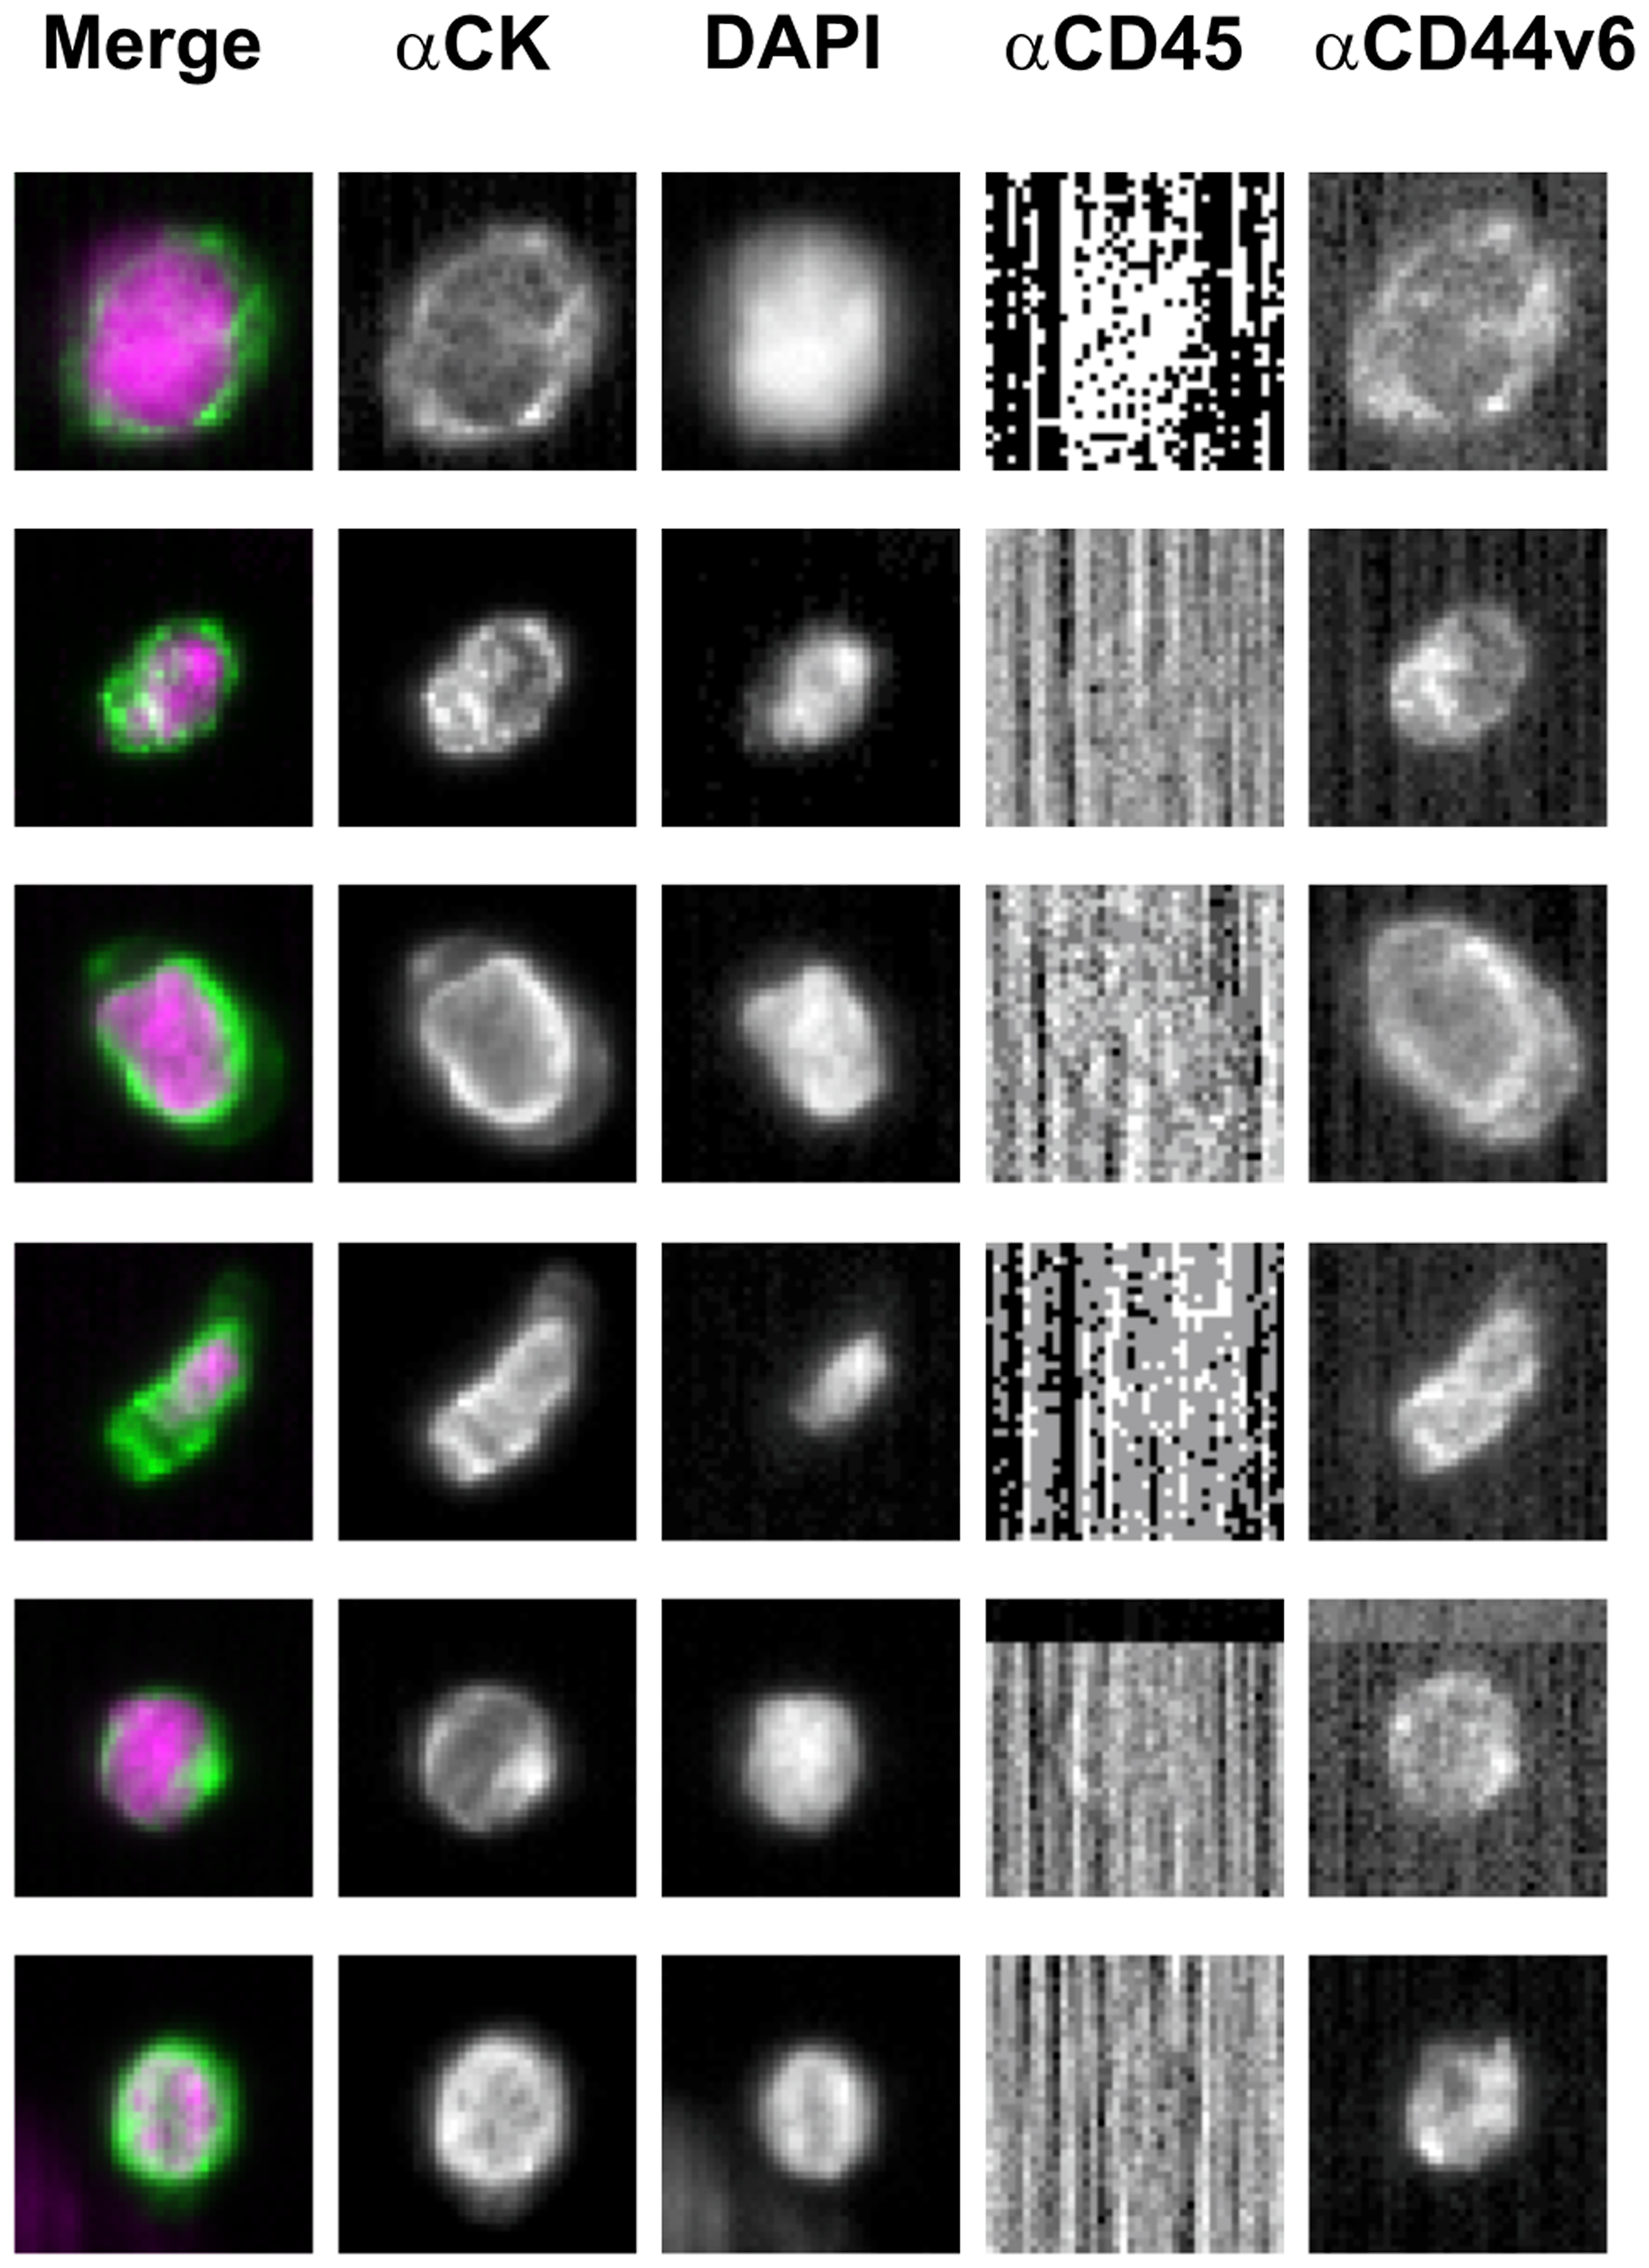 Representative images of CD44v6-positive circulating tumor cells isolated from one metastatic colorectal patient.